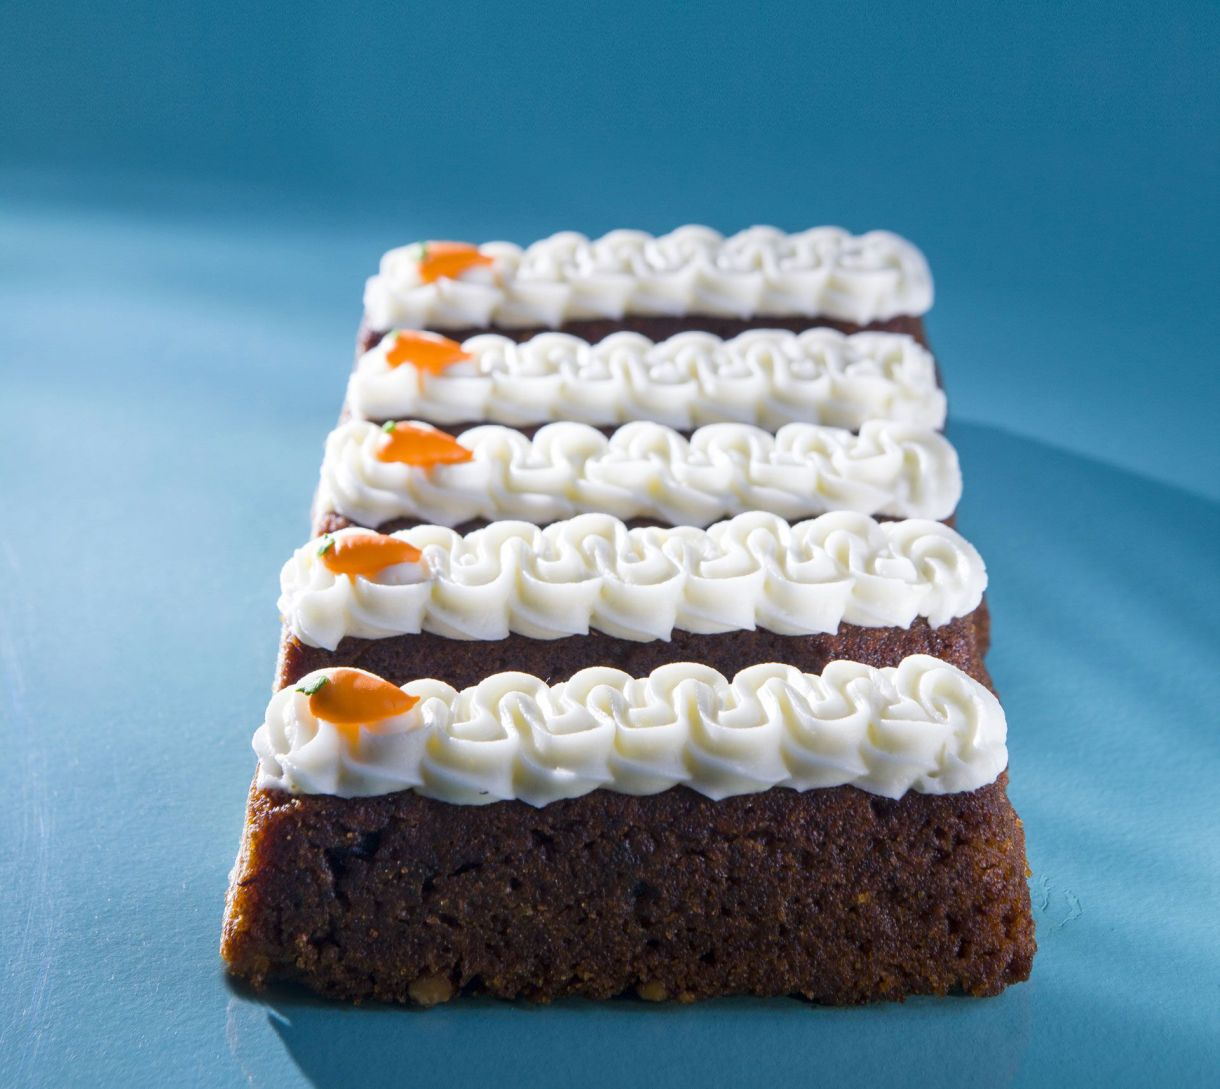 Mini carrot cake con frosting (Gout Gluten Free)